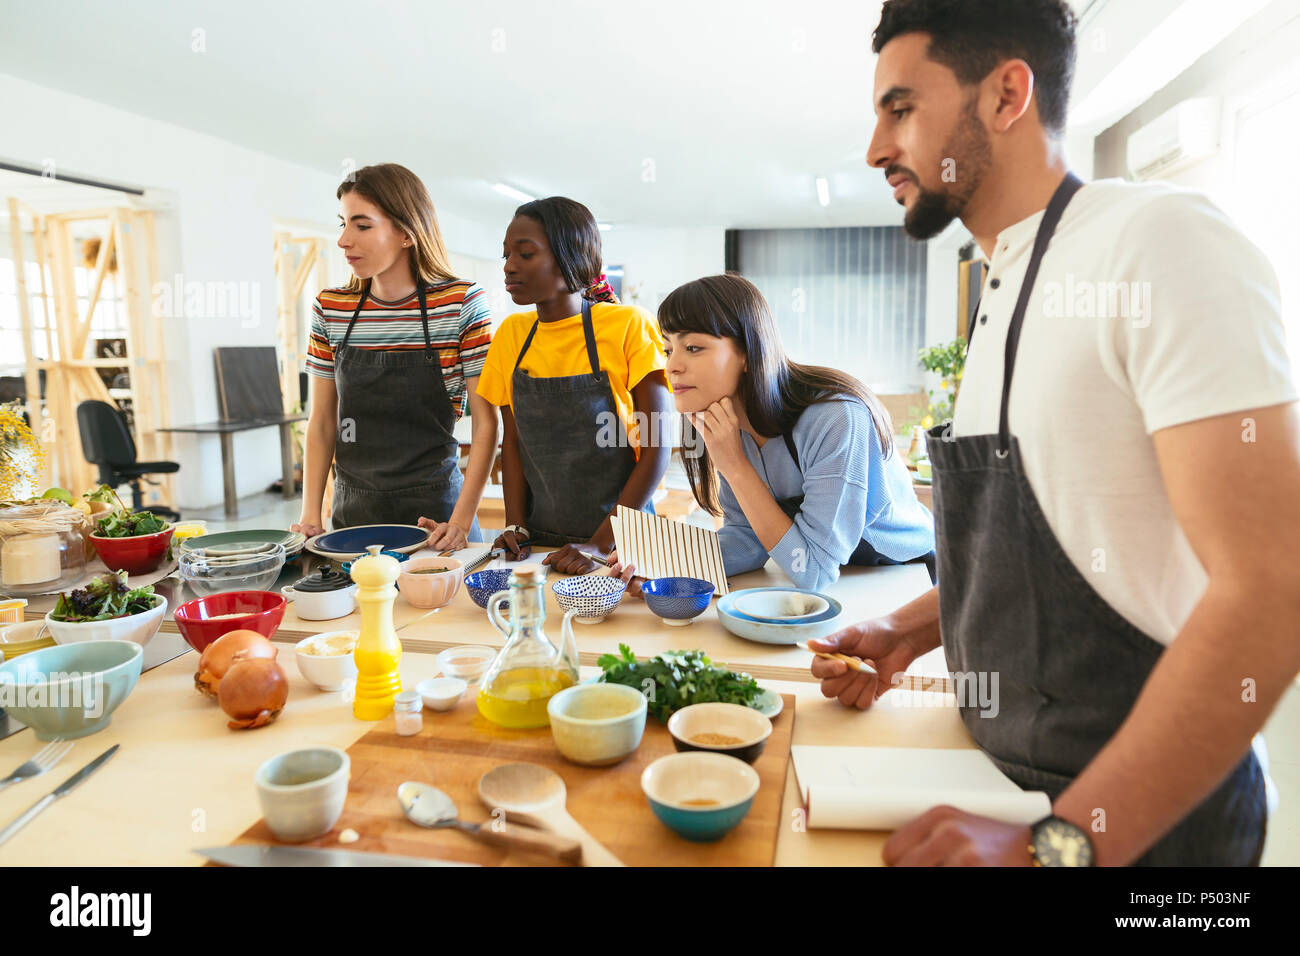 Friends in a cooking workshop watching attentively - Stock Image